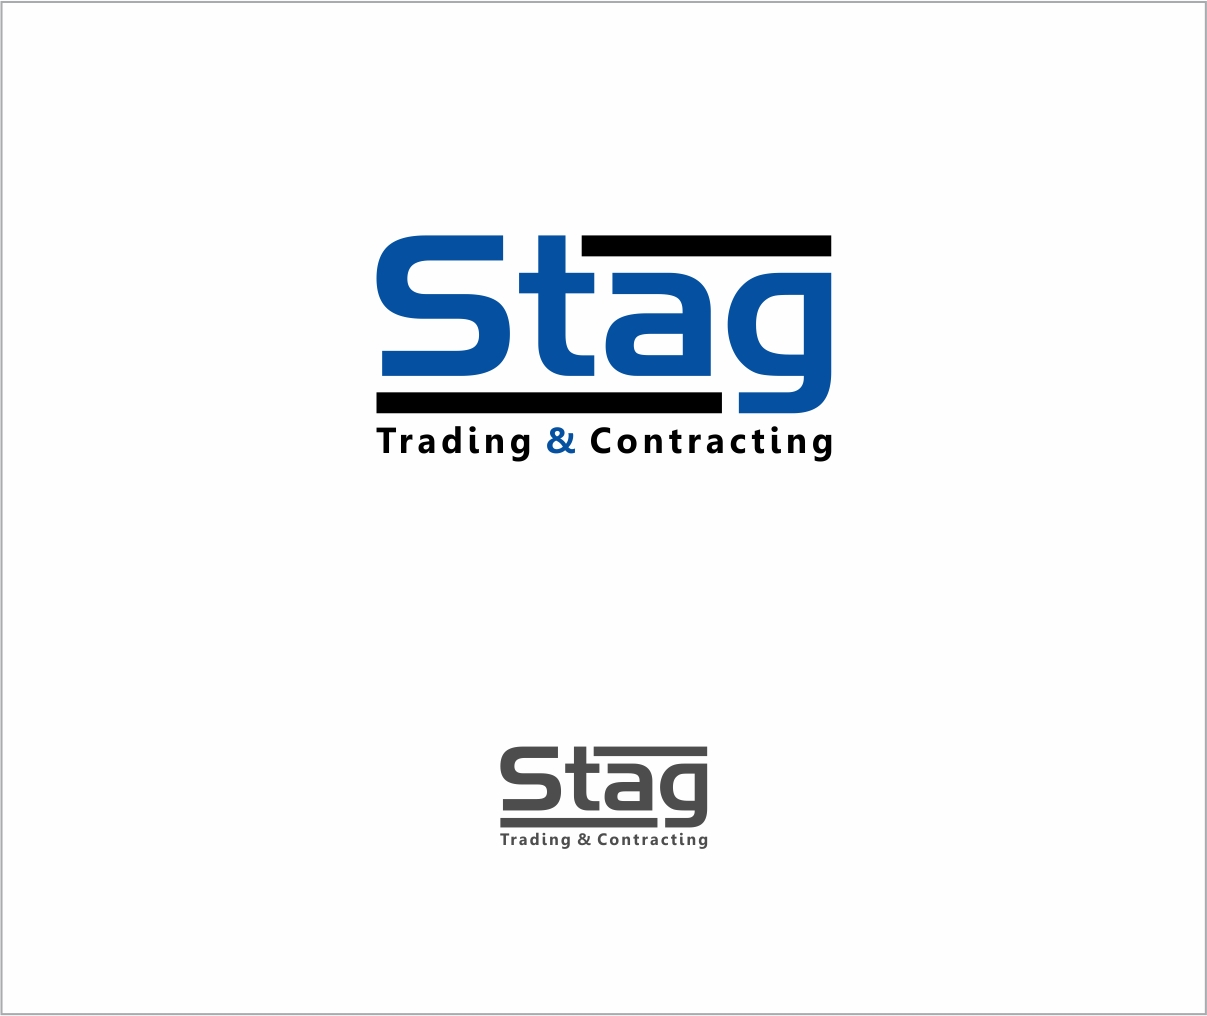 Logo Design by haidu - Entry No. 281 in the Logo Design Contest Captivating Logo Design for STAG Trading & Contracting.